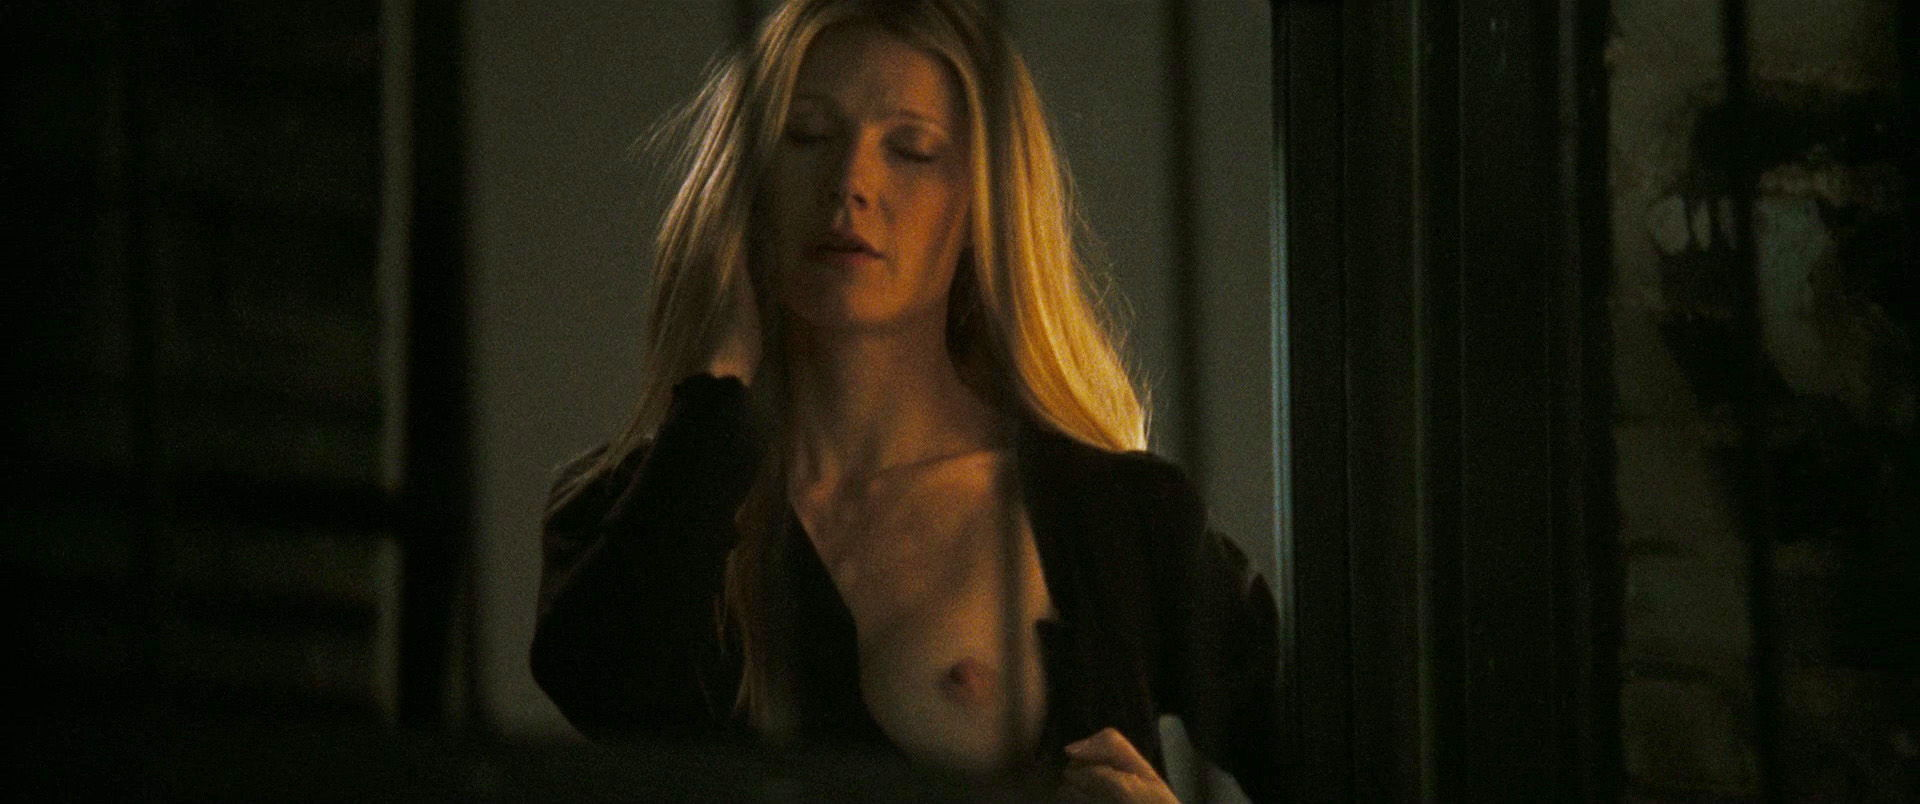 oral-sex-gwyneth-paltrow-in-two-lovers-naked-poulter-topless